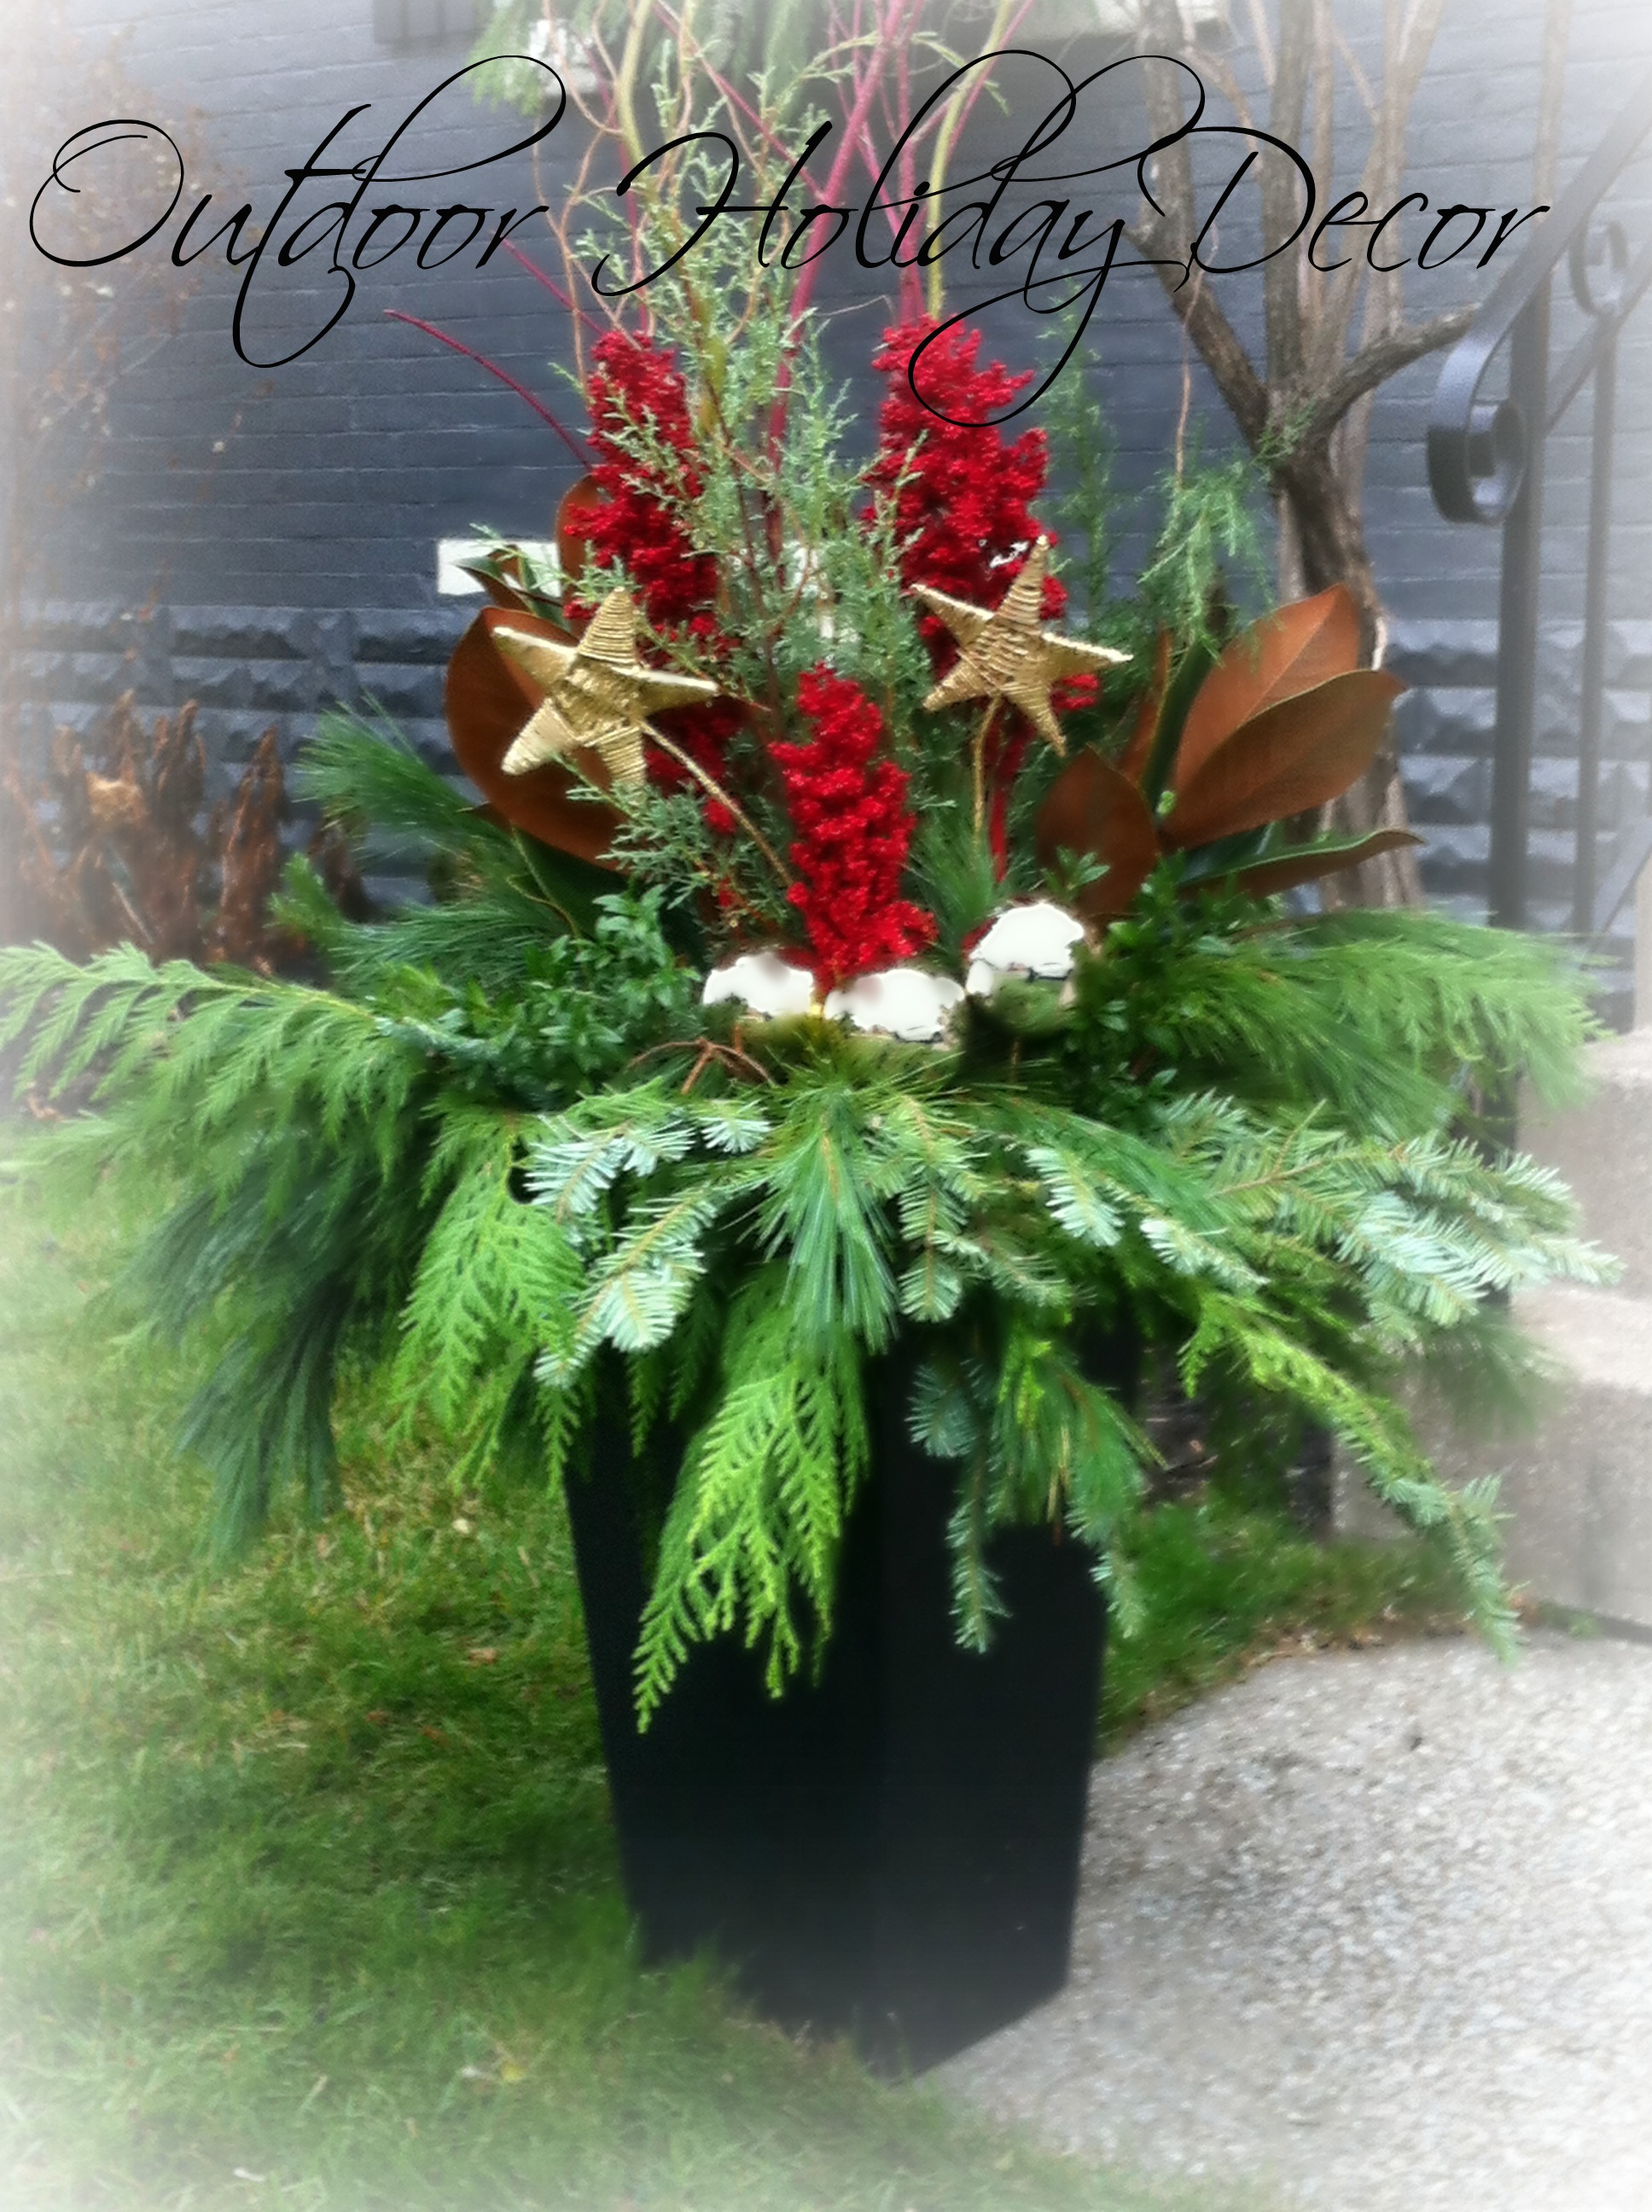 Outdoor Planters Near Me Outdoor Holiday Decor A Place For You And Me